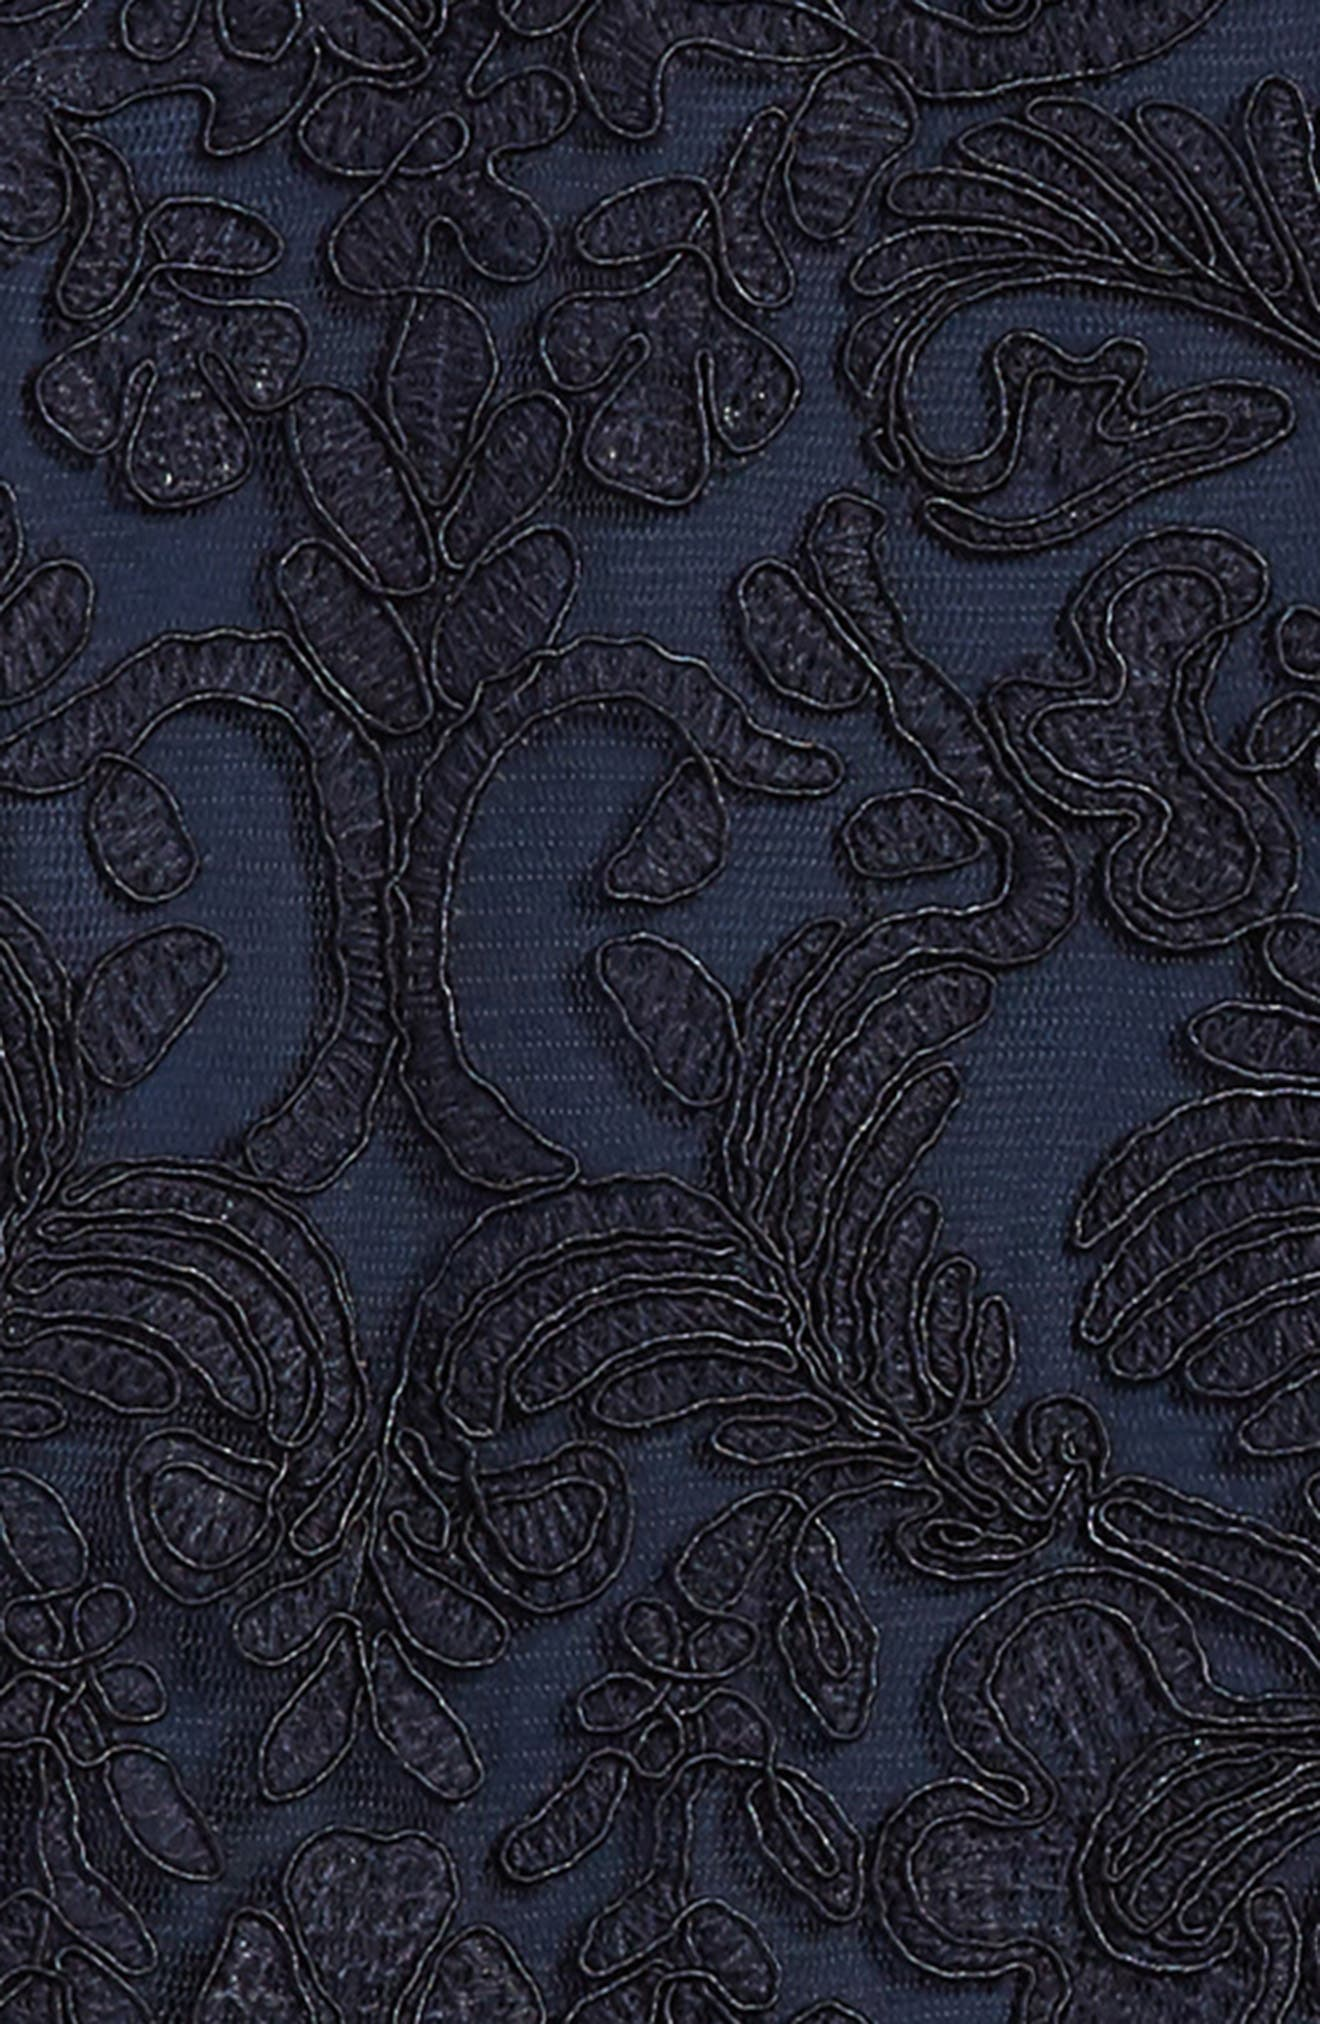 'Honeysuckle' Embroidered Tulle Dress,                             Alternate thumbnail 3, color,                             Navy